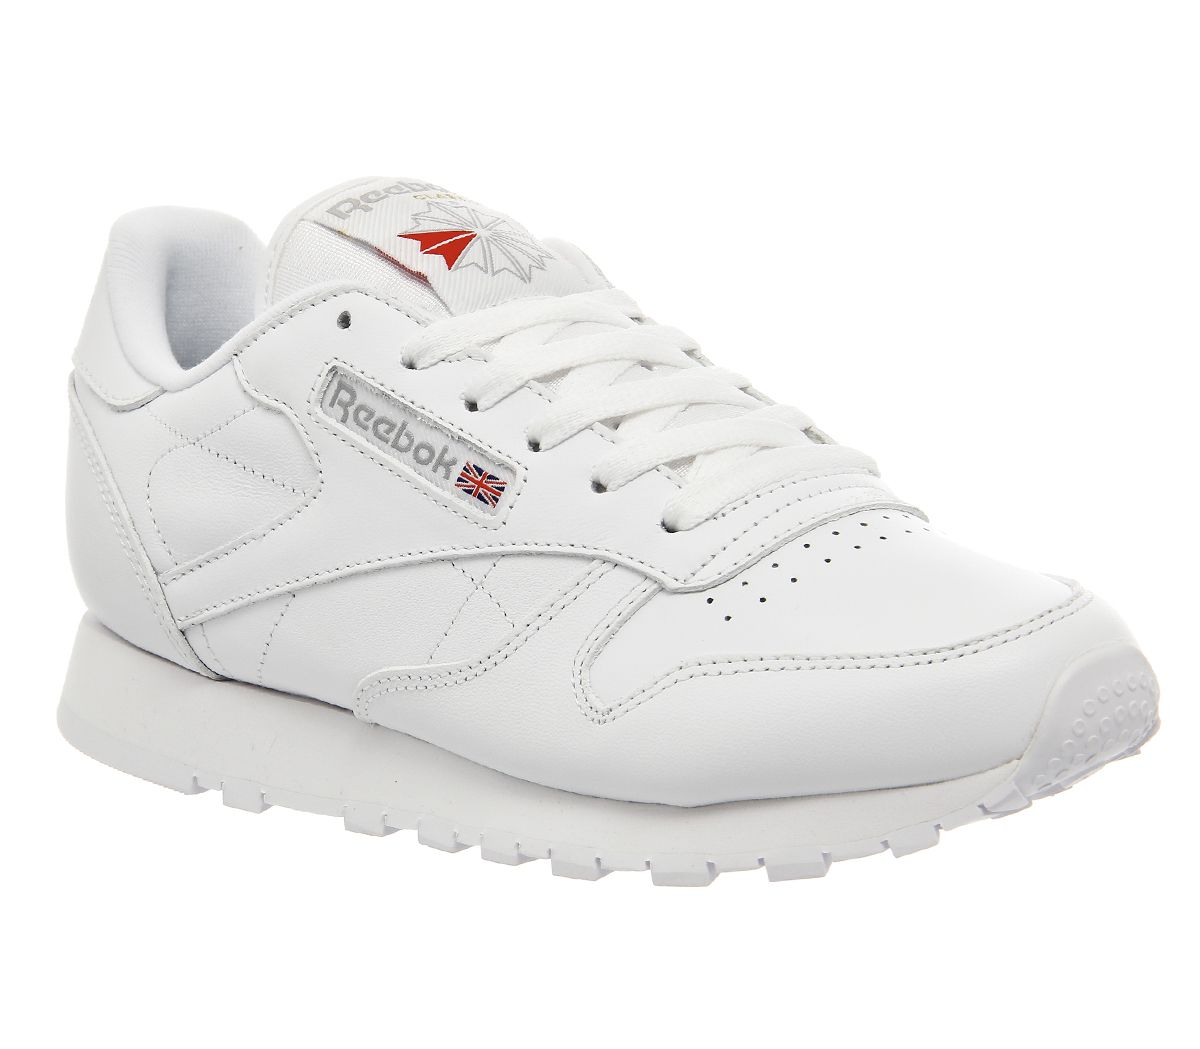 6e69b87229646 Sentinel Womens Reebok White Leather Lace Up Trainers Size UK 6  Ex-Display